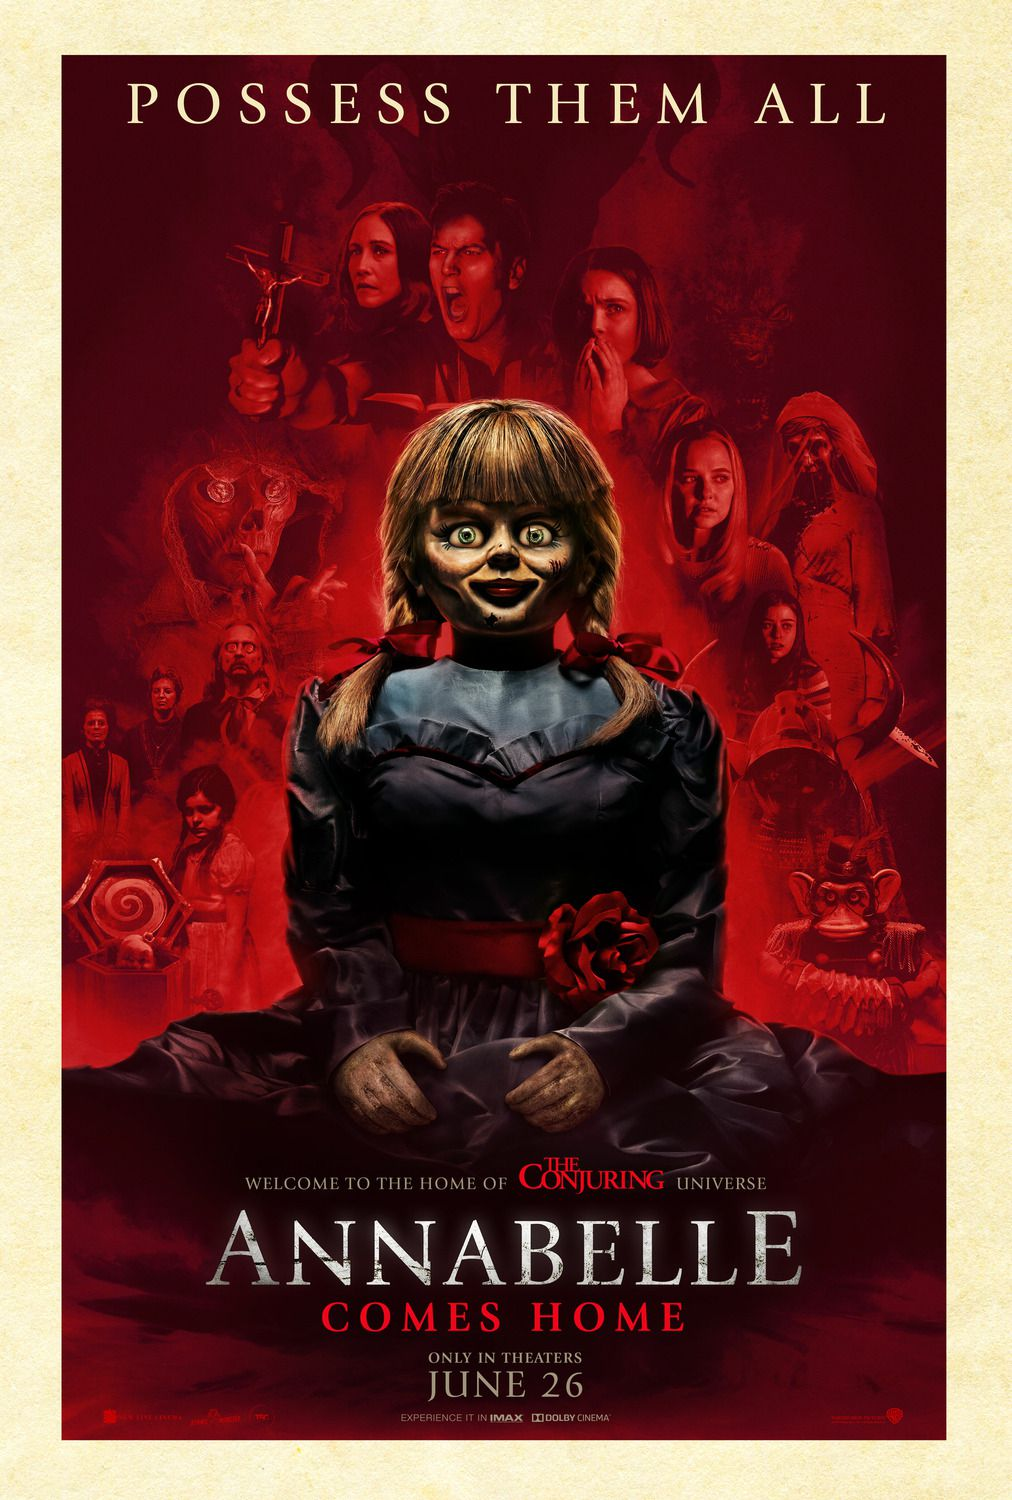 Annabelle comes Home 2019 Possess them all - poster